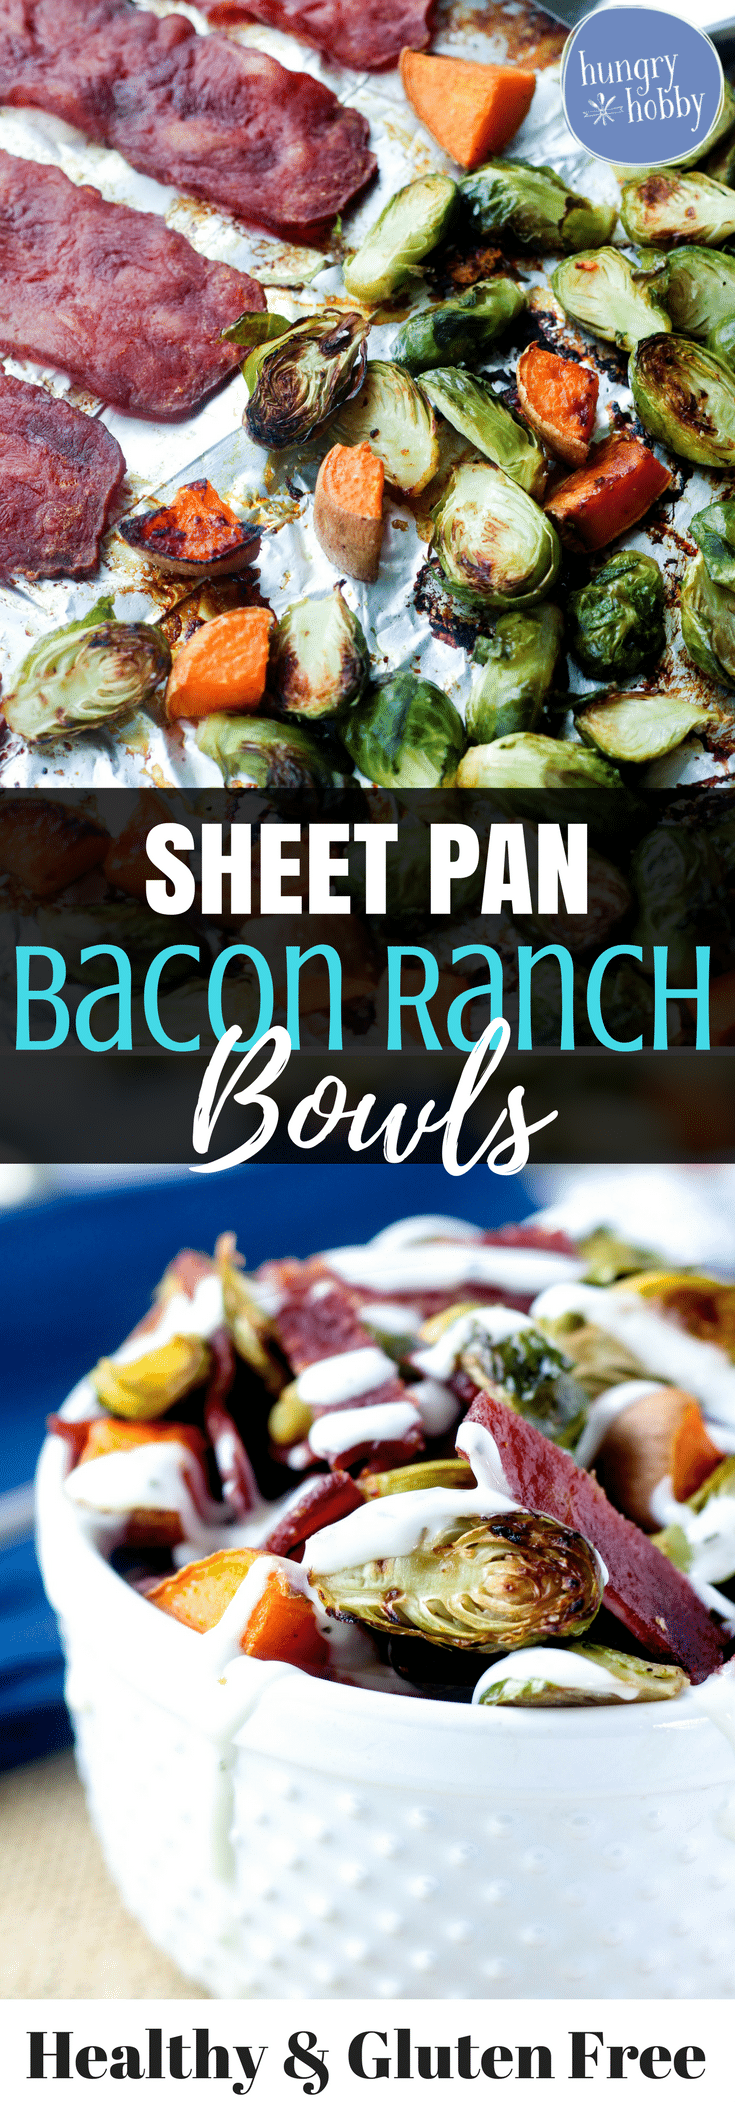 Turkey Bacon Ranch Bowls are a healthy sheet pan meal made with salty bacon baked, then tossed with roasted veggies and slathered with creamy ranch.